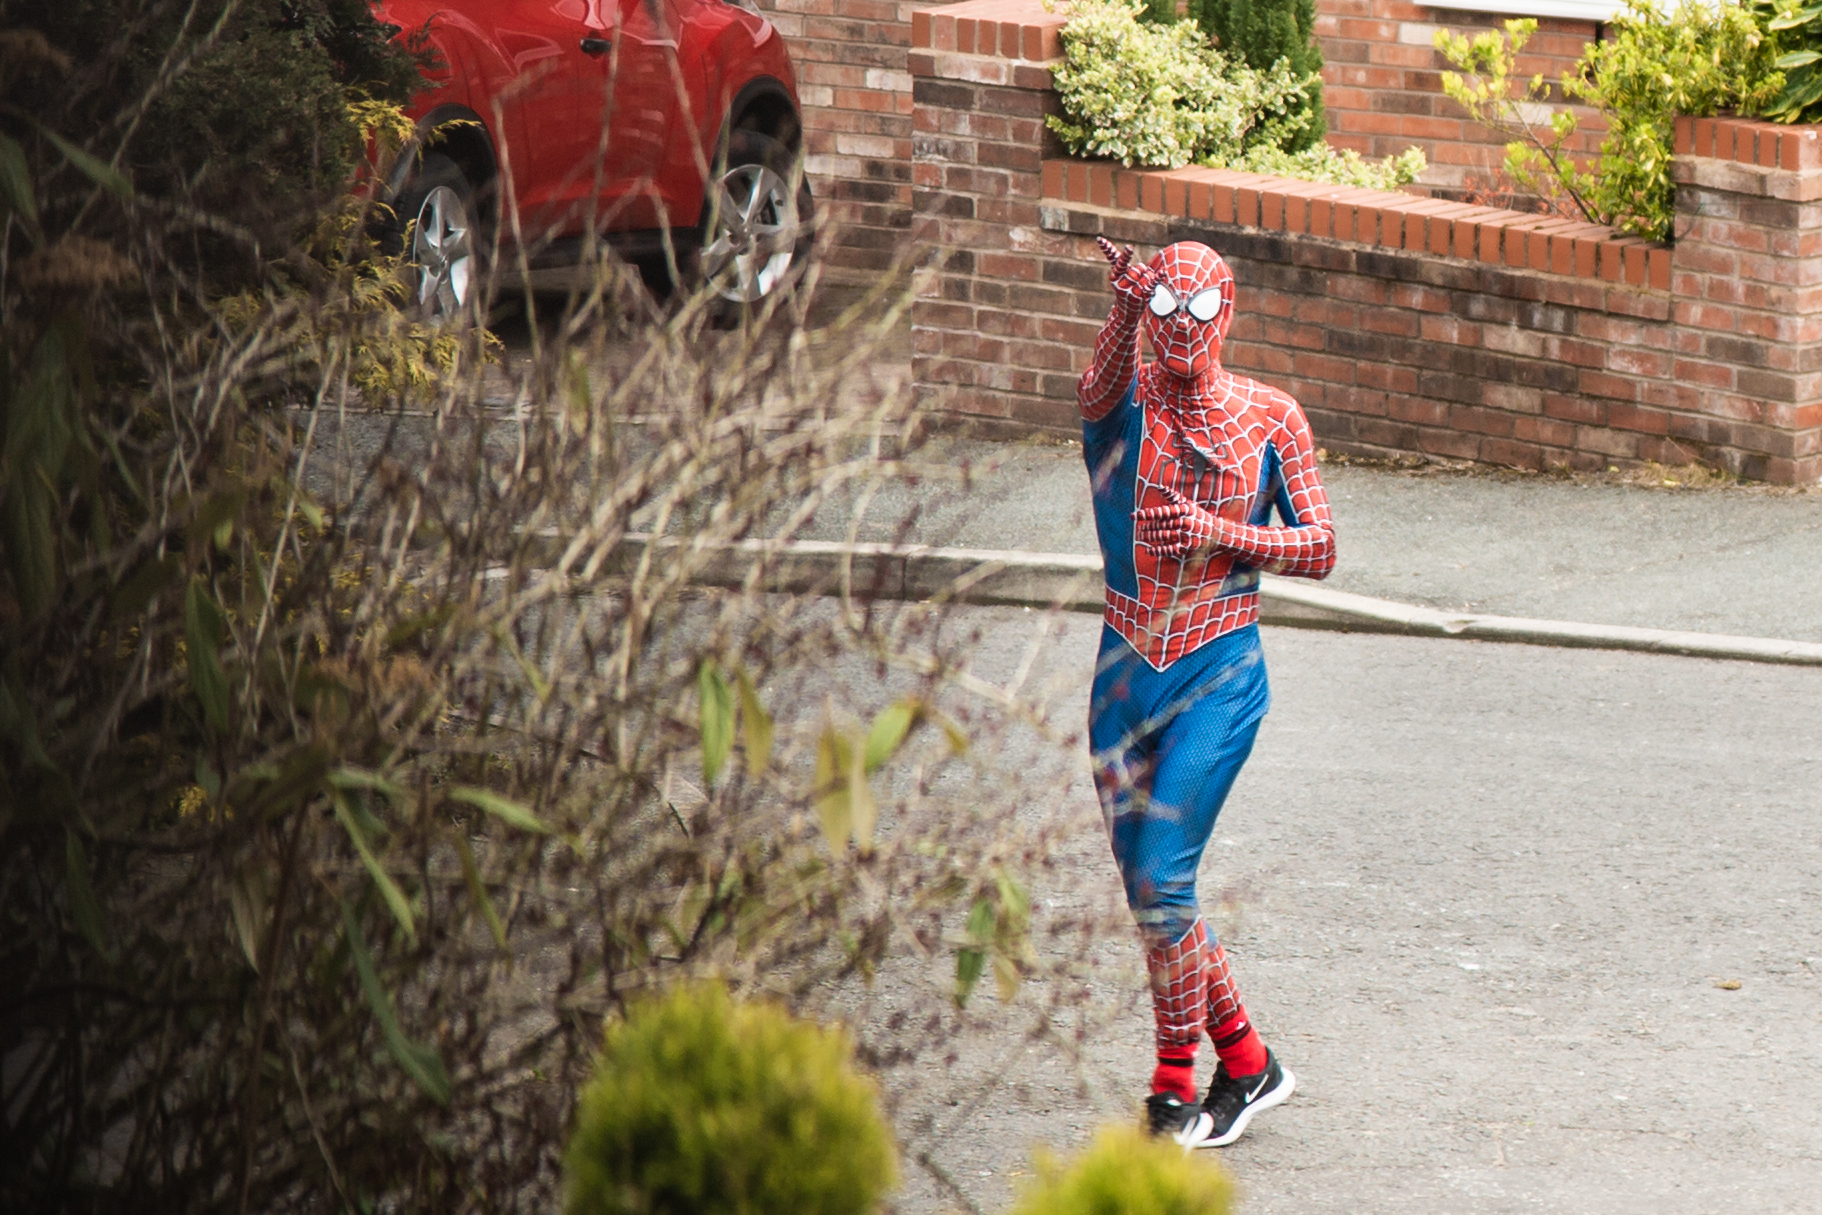 The 'Stockport Spider-Man' visits local residents